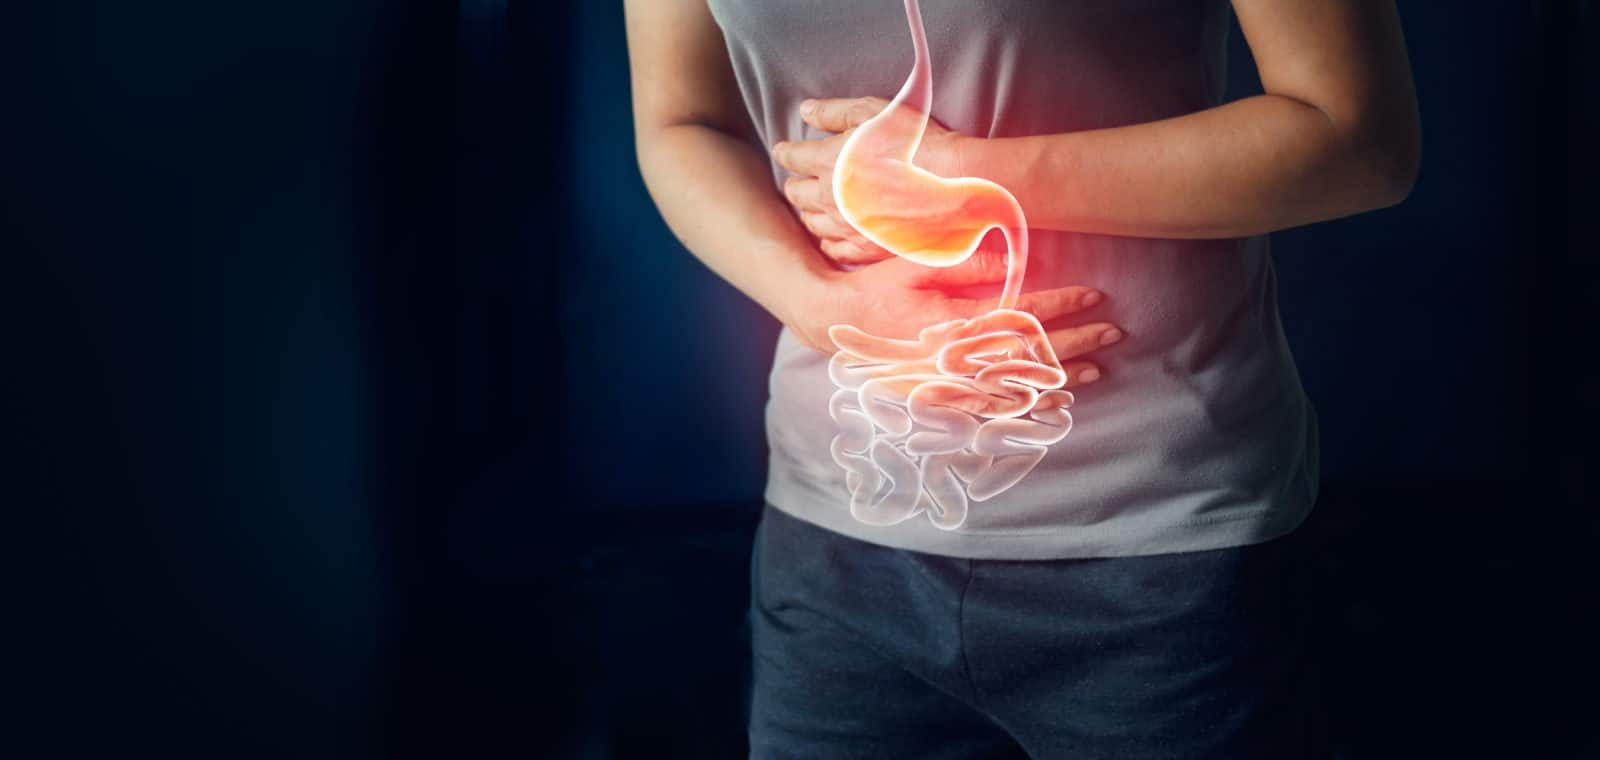 ulcer pain relief, How to Ease Your Stomach Woes and Get Ulcer Pain Relief